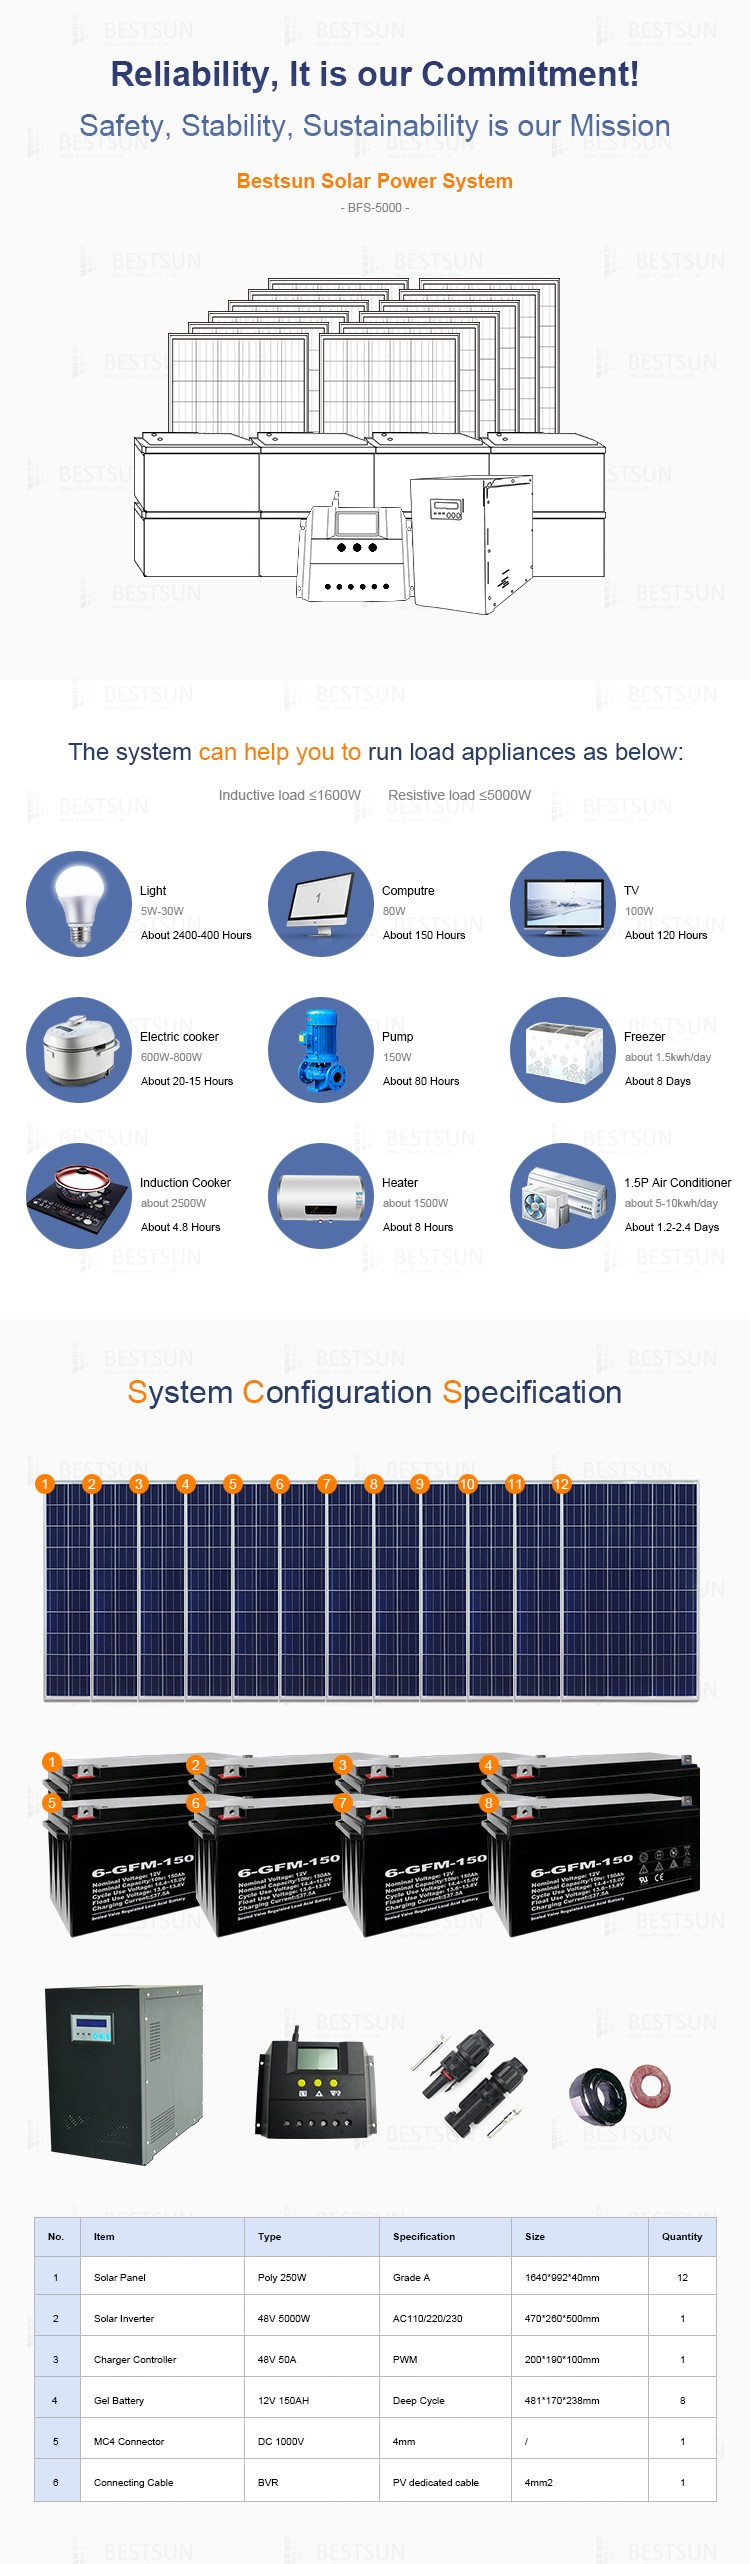 Bestsun 5kw Pv Solar Panel Price In Philippines Portable Solarpower Integrated Circuit Systems Power Generators For Areas Generator Complete Unit Off